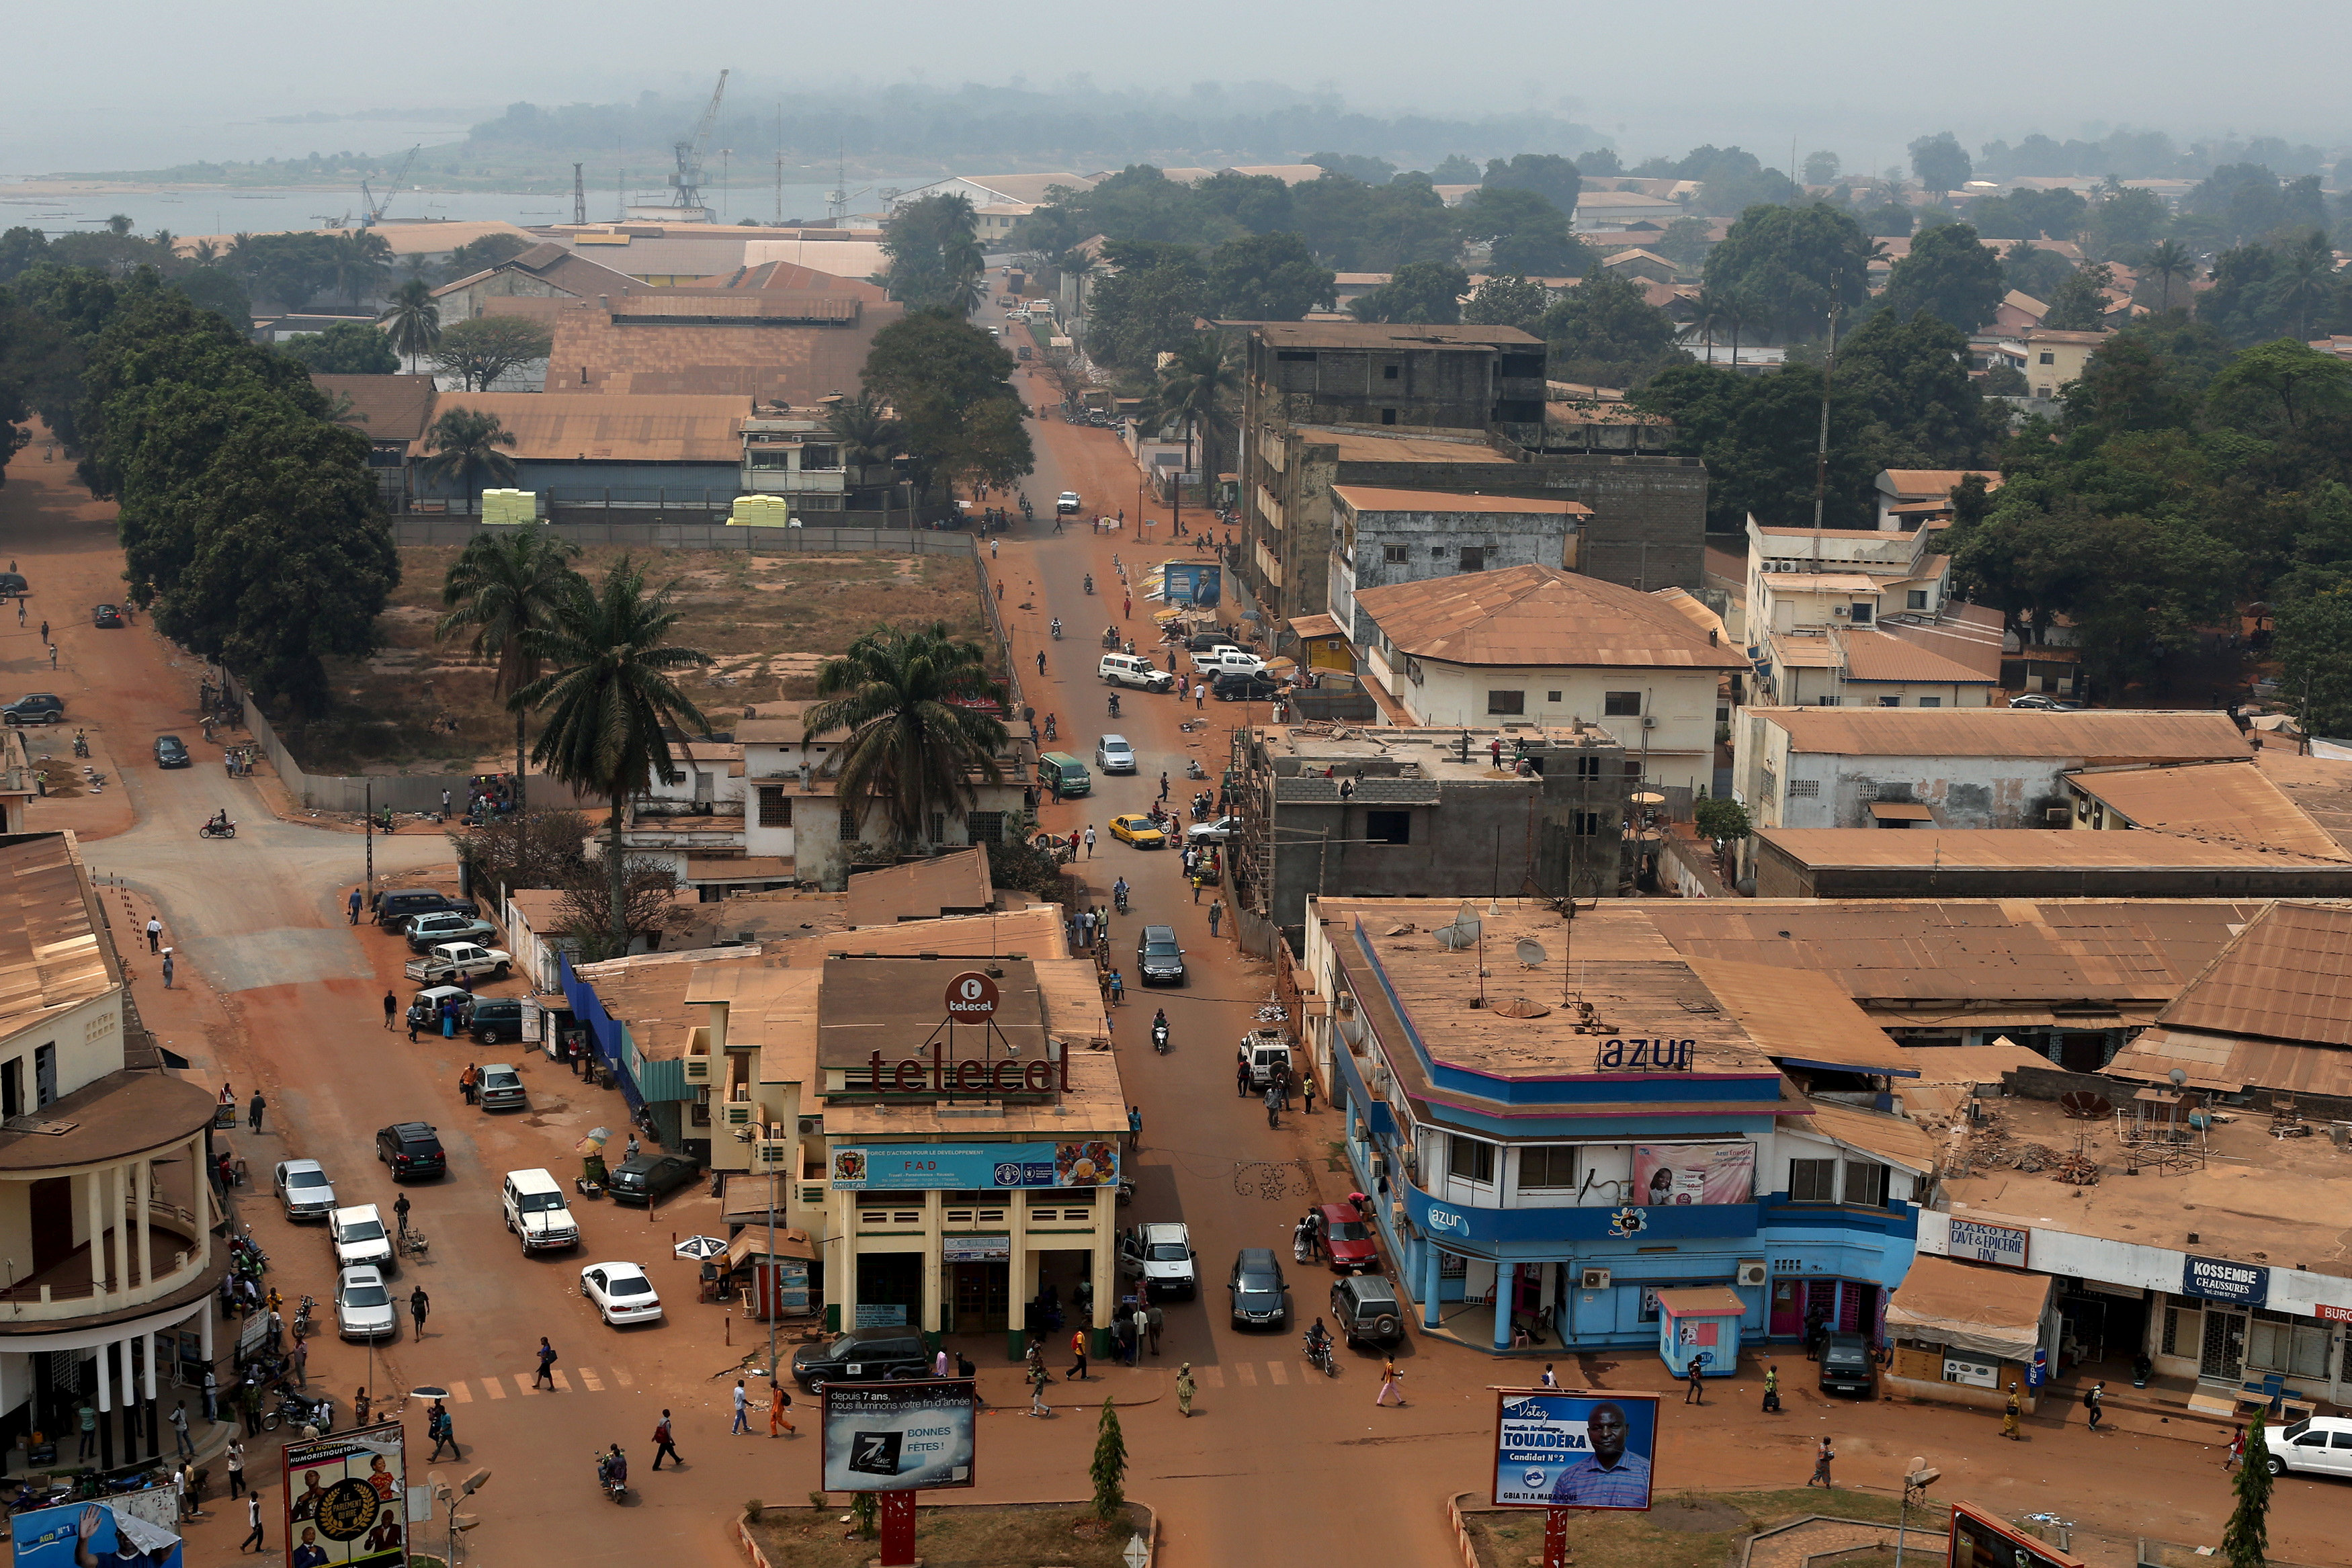 FILE PHOTO: A general view shows part of the capital Bangui, Central African Republic, February 16, 2016. REUTERS/Siegfried Modola/File Photo